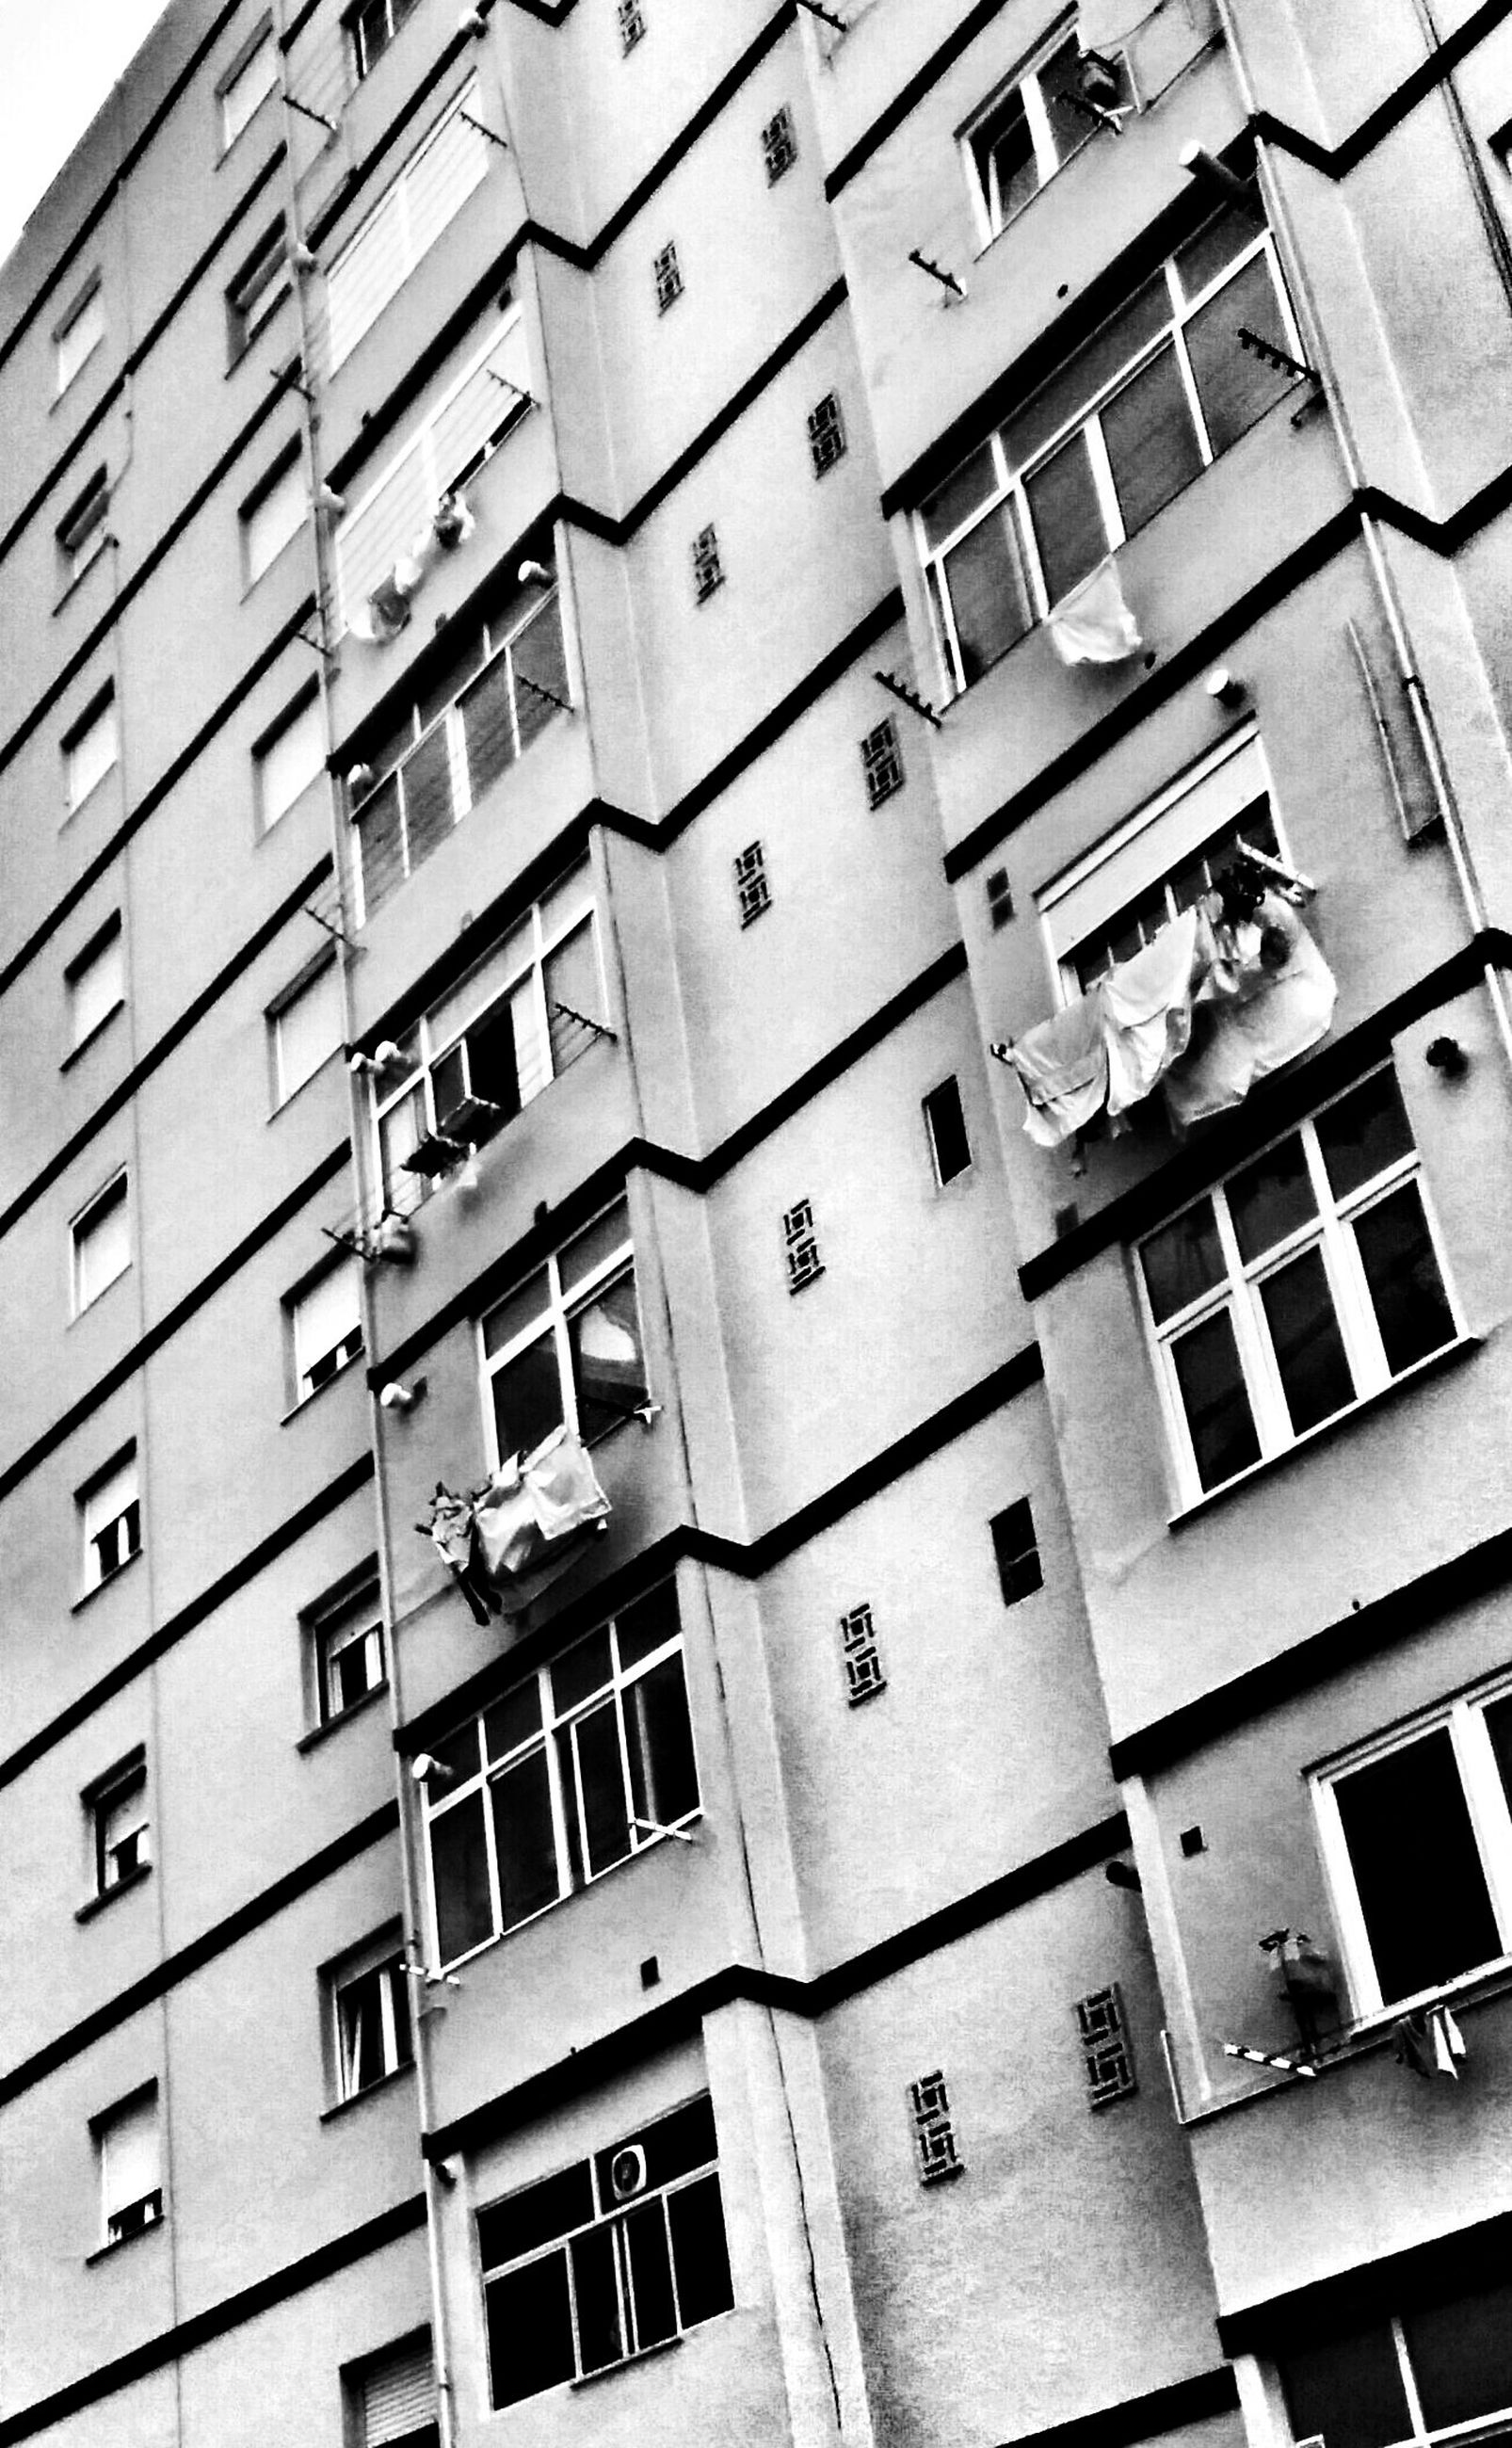 building exterior, architecture, built structure, window, low angle view, residential building, residential structure, building, full frame, city, apartment, backgrounds, day, balcony, outdoors, no people, in a row, repetition, city life, facade